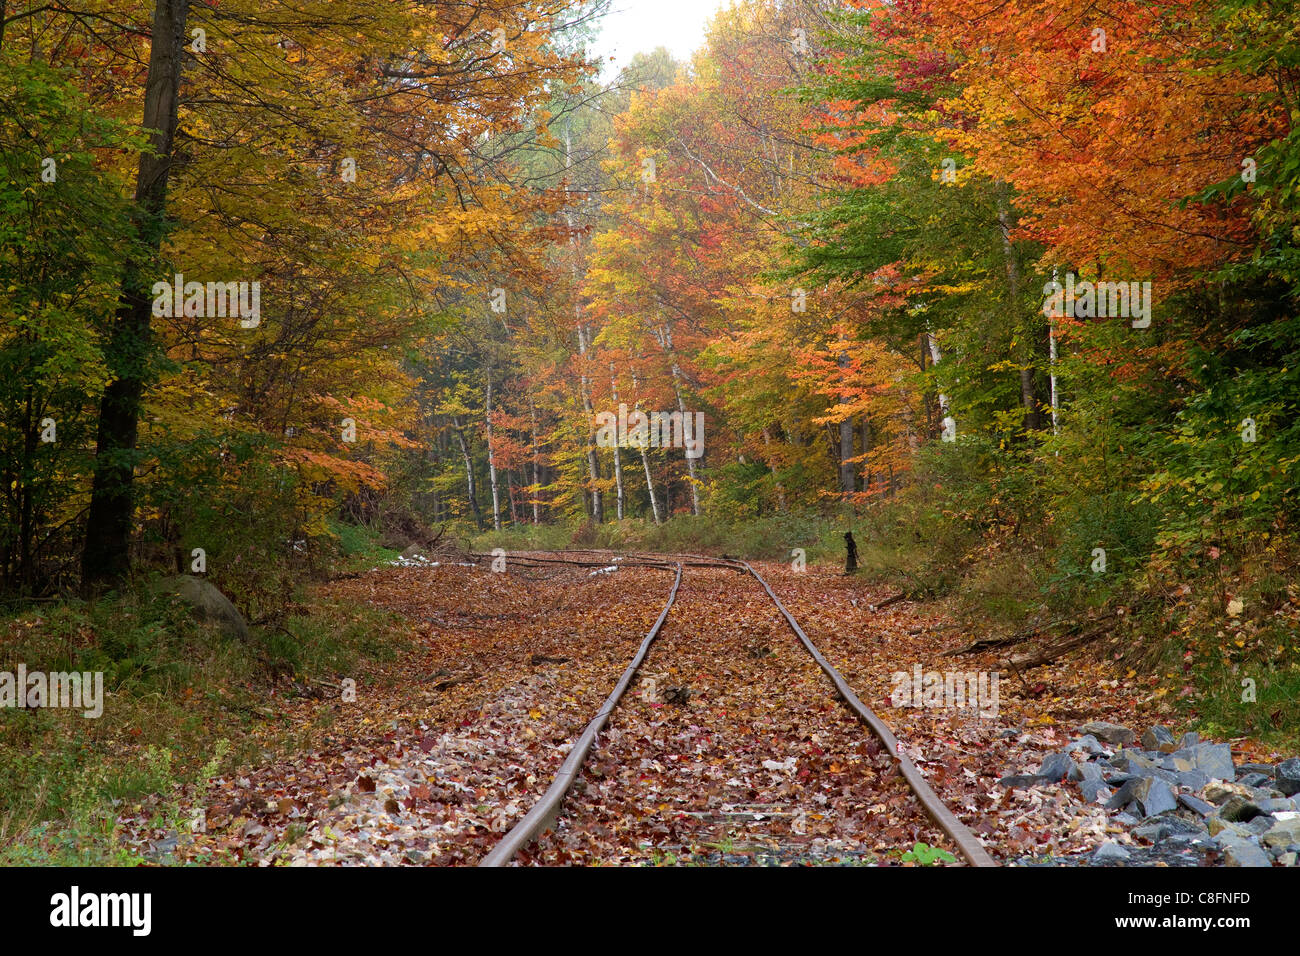 Fall, autumn, trees with bright colorful leaves in Vermont, New England makes a beautiful foliage scene along railroad - Stock Image